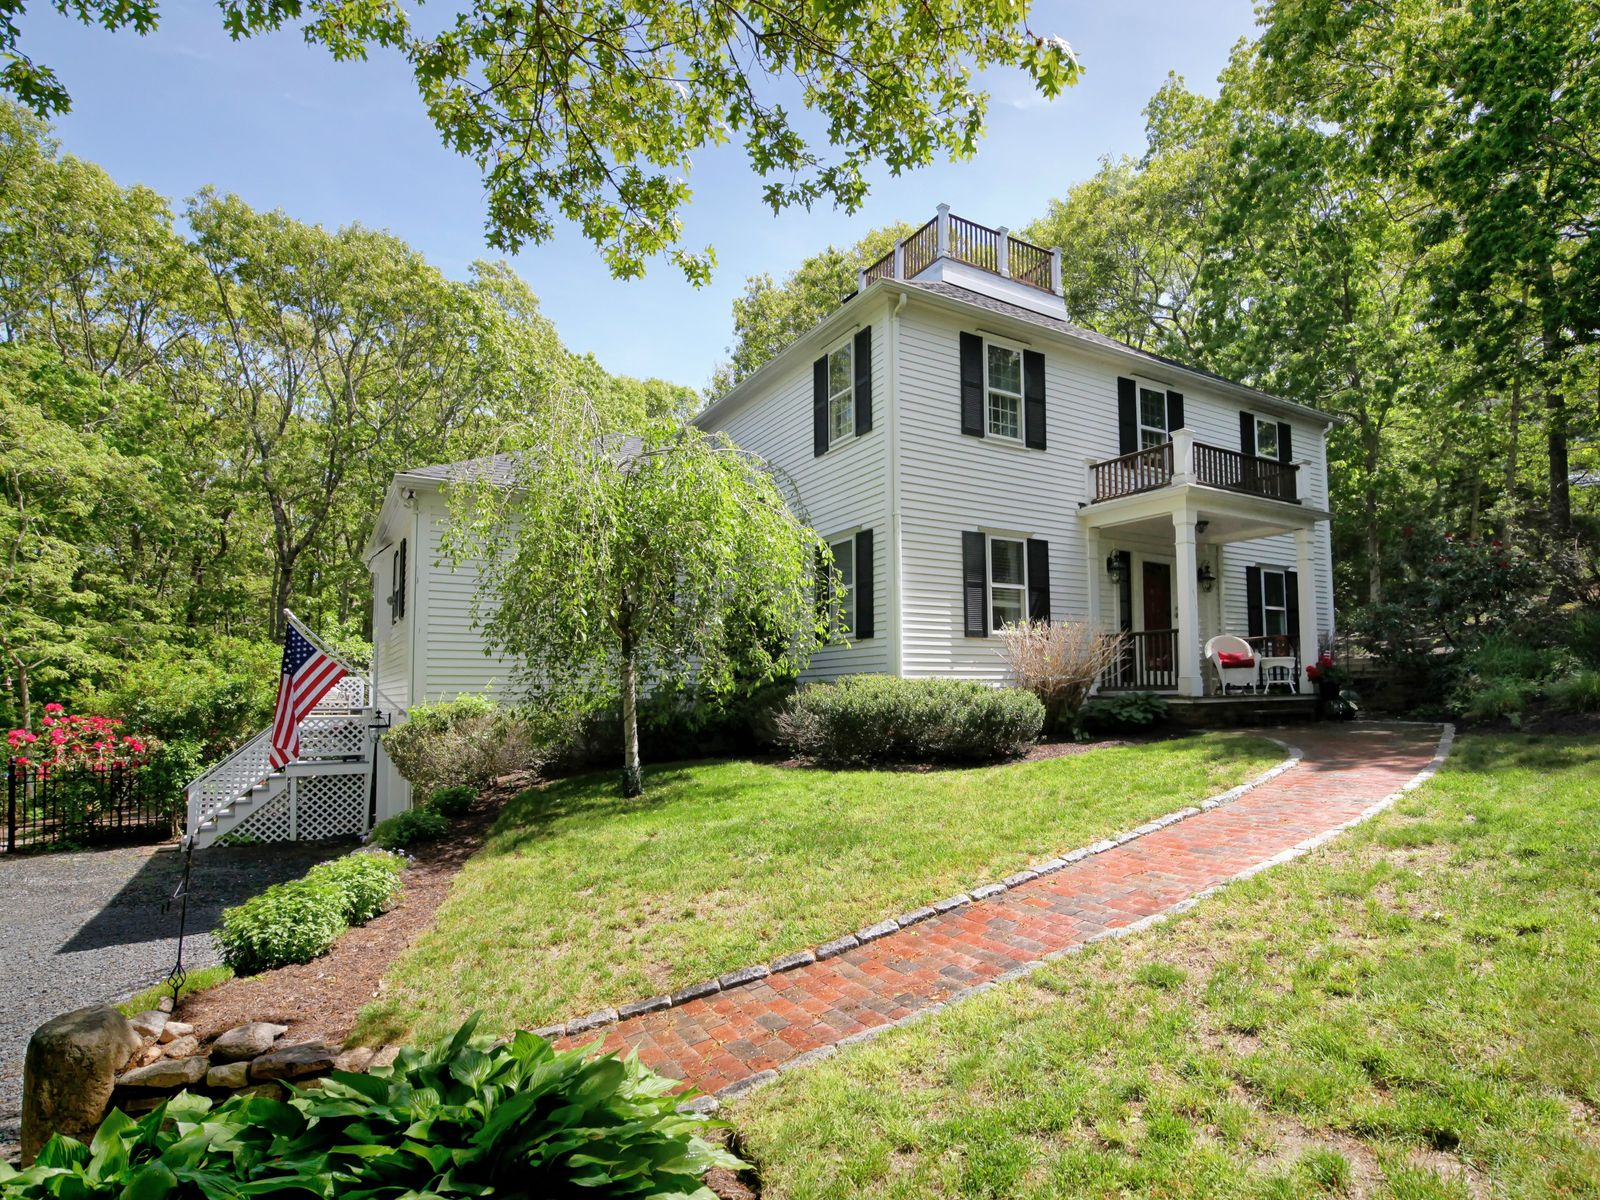 Pristine Hip Roof Colonial Near Beaches, East Sandwich MA Single Family Home - Cape Cod Real Estate